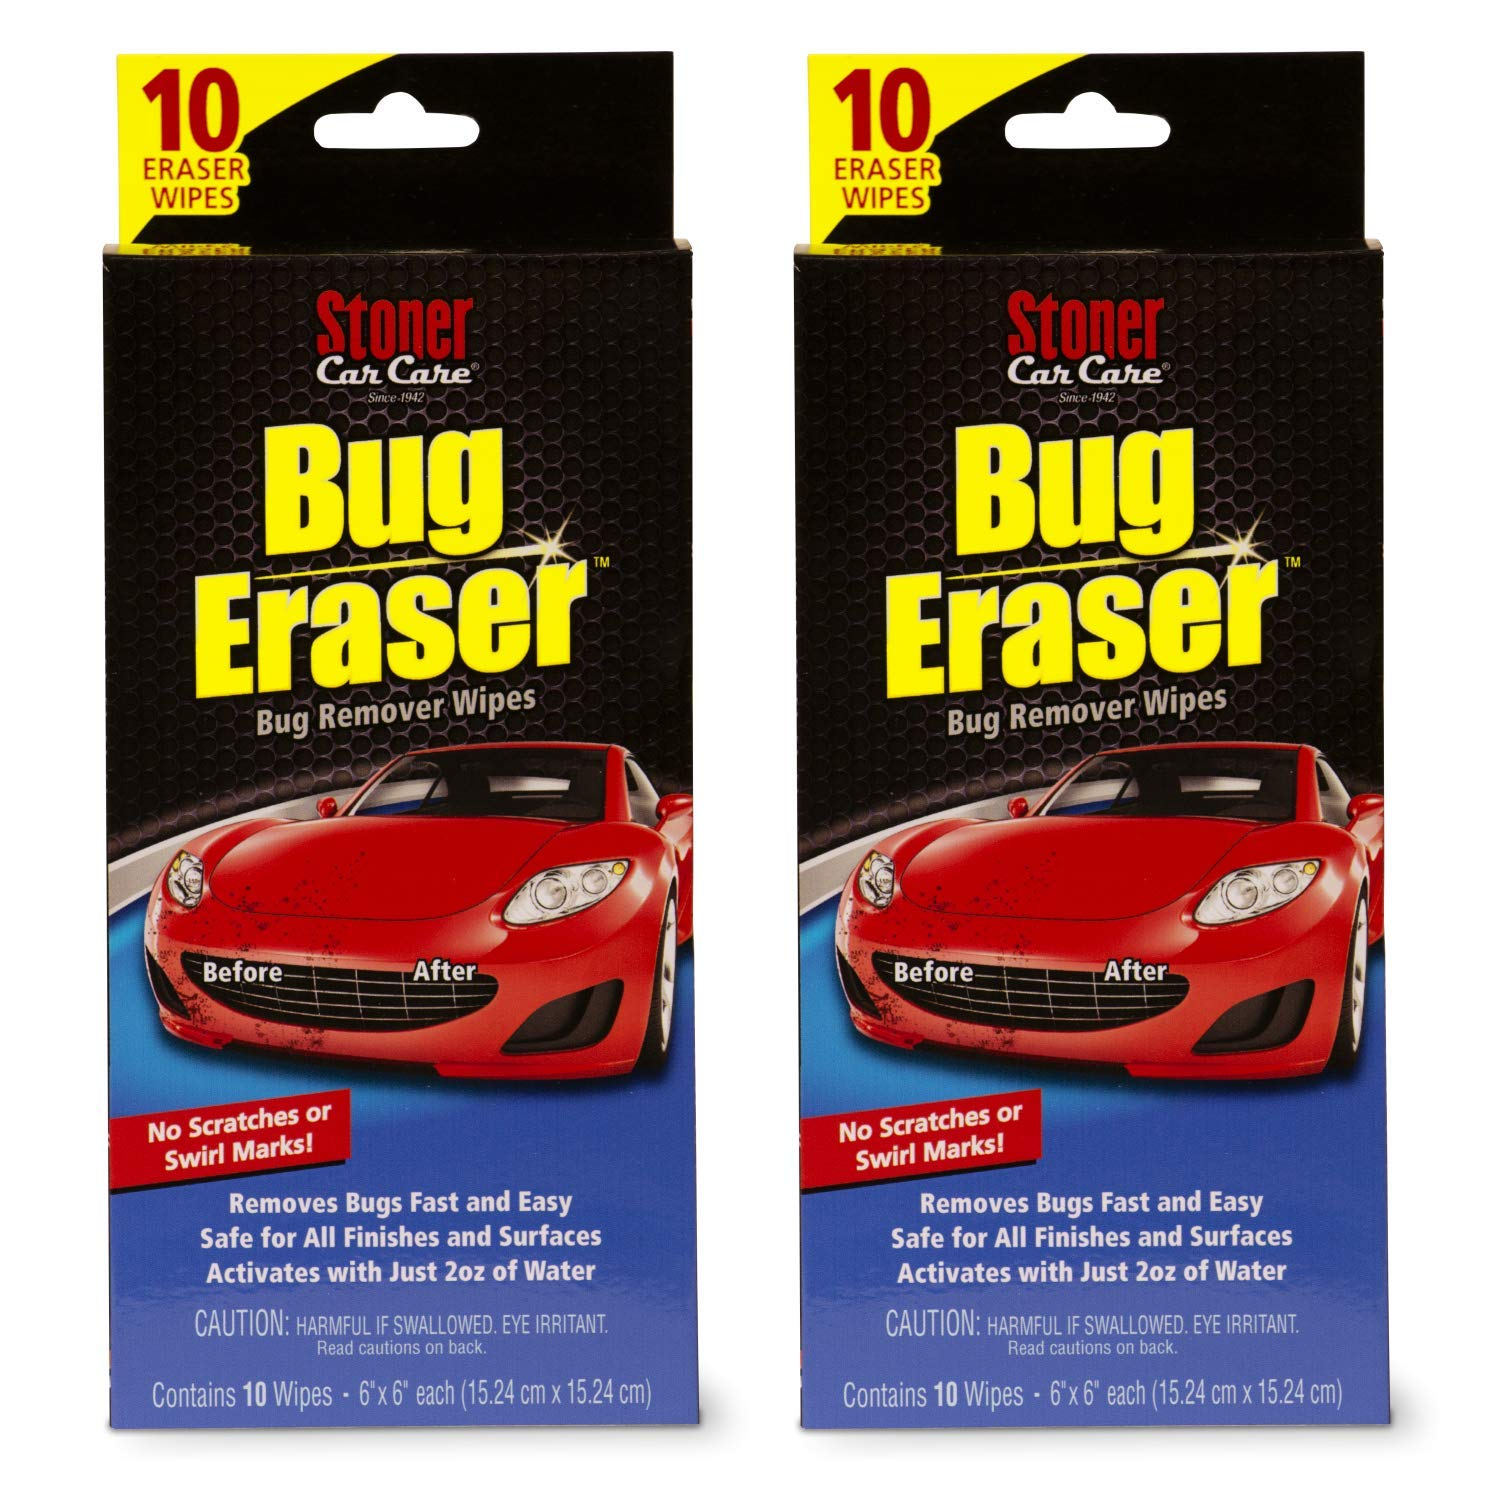 Stoner Car Care 95401 Bug Eraser Car-Cleaning Wipes, Removes Bugs Fast and Easy, Safe for All Automotive Surfaces, 10 Eraser Wipes, Set of 2